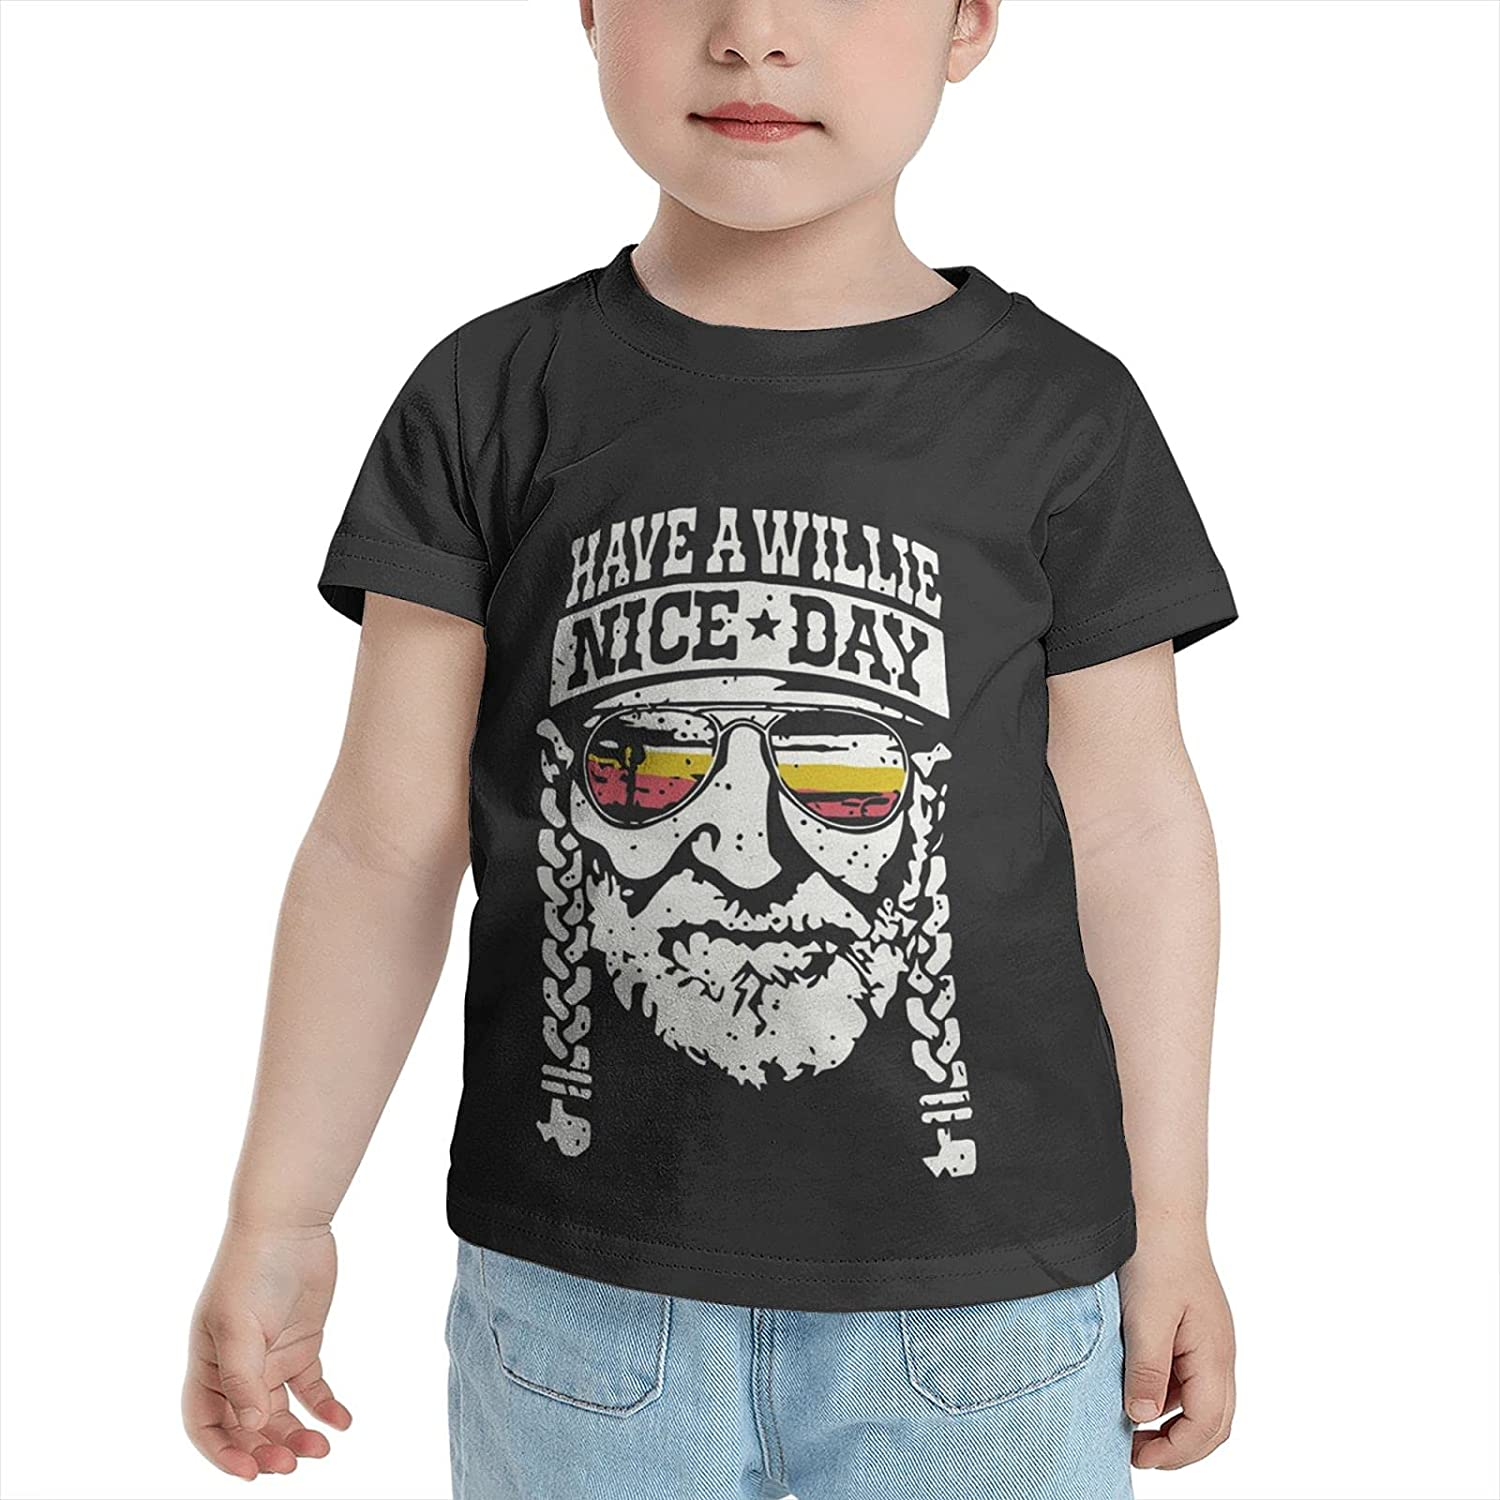 Have A Willie Nice Day Child T Shirt 2-6 Year Old Funny Kids Tees Shirt Short Sleeved Top for Boys Girl